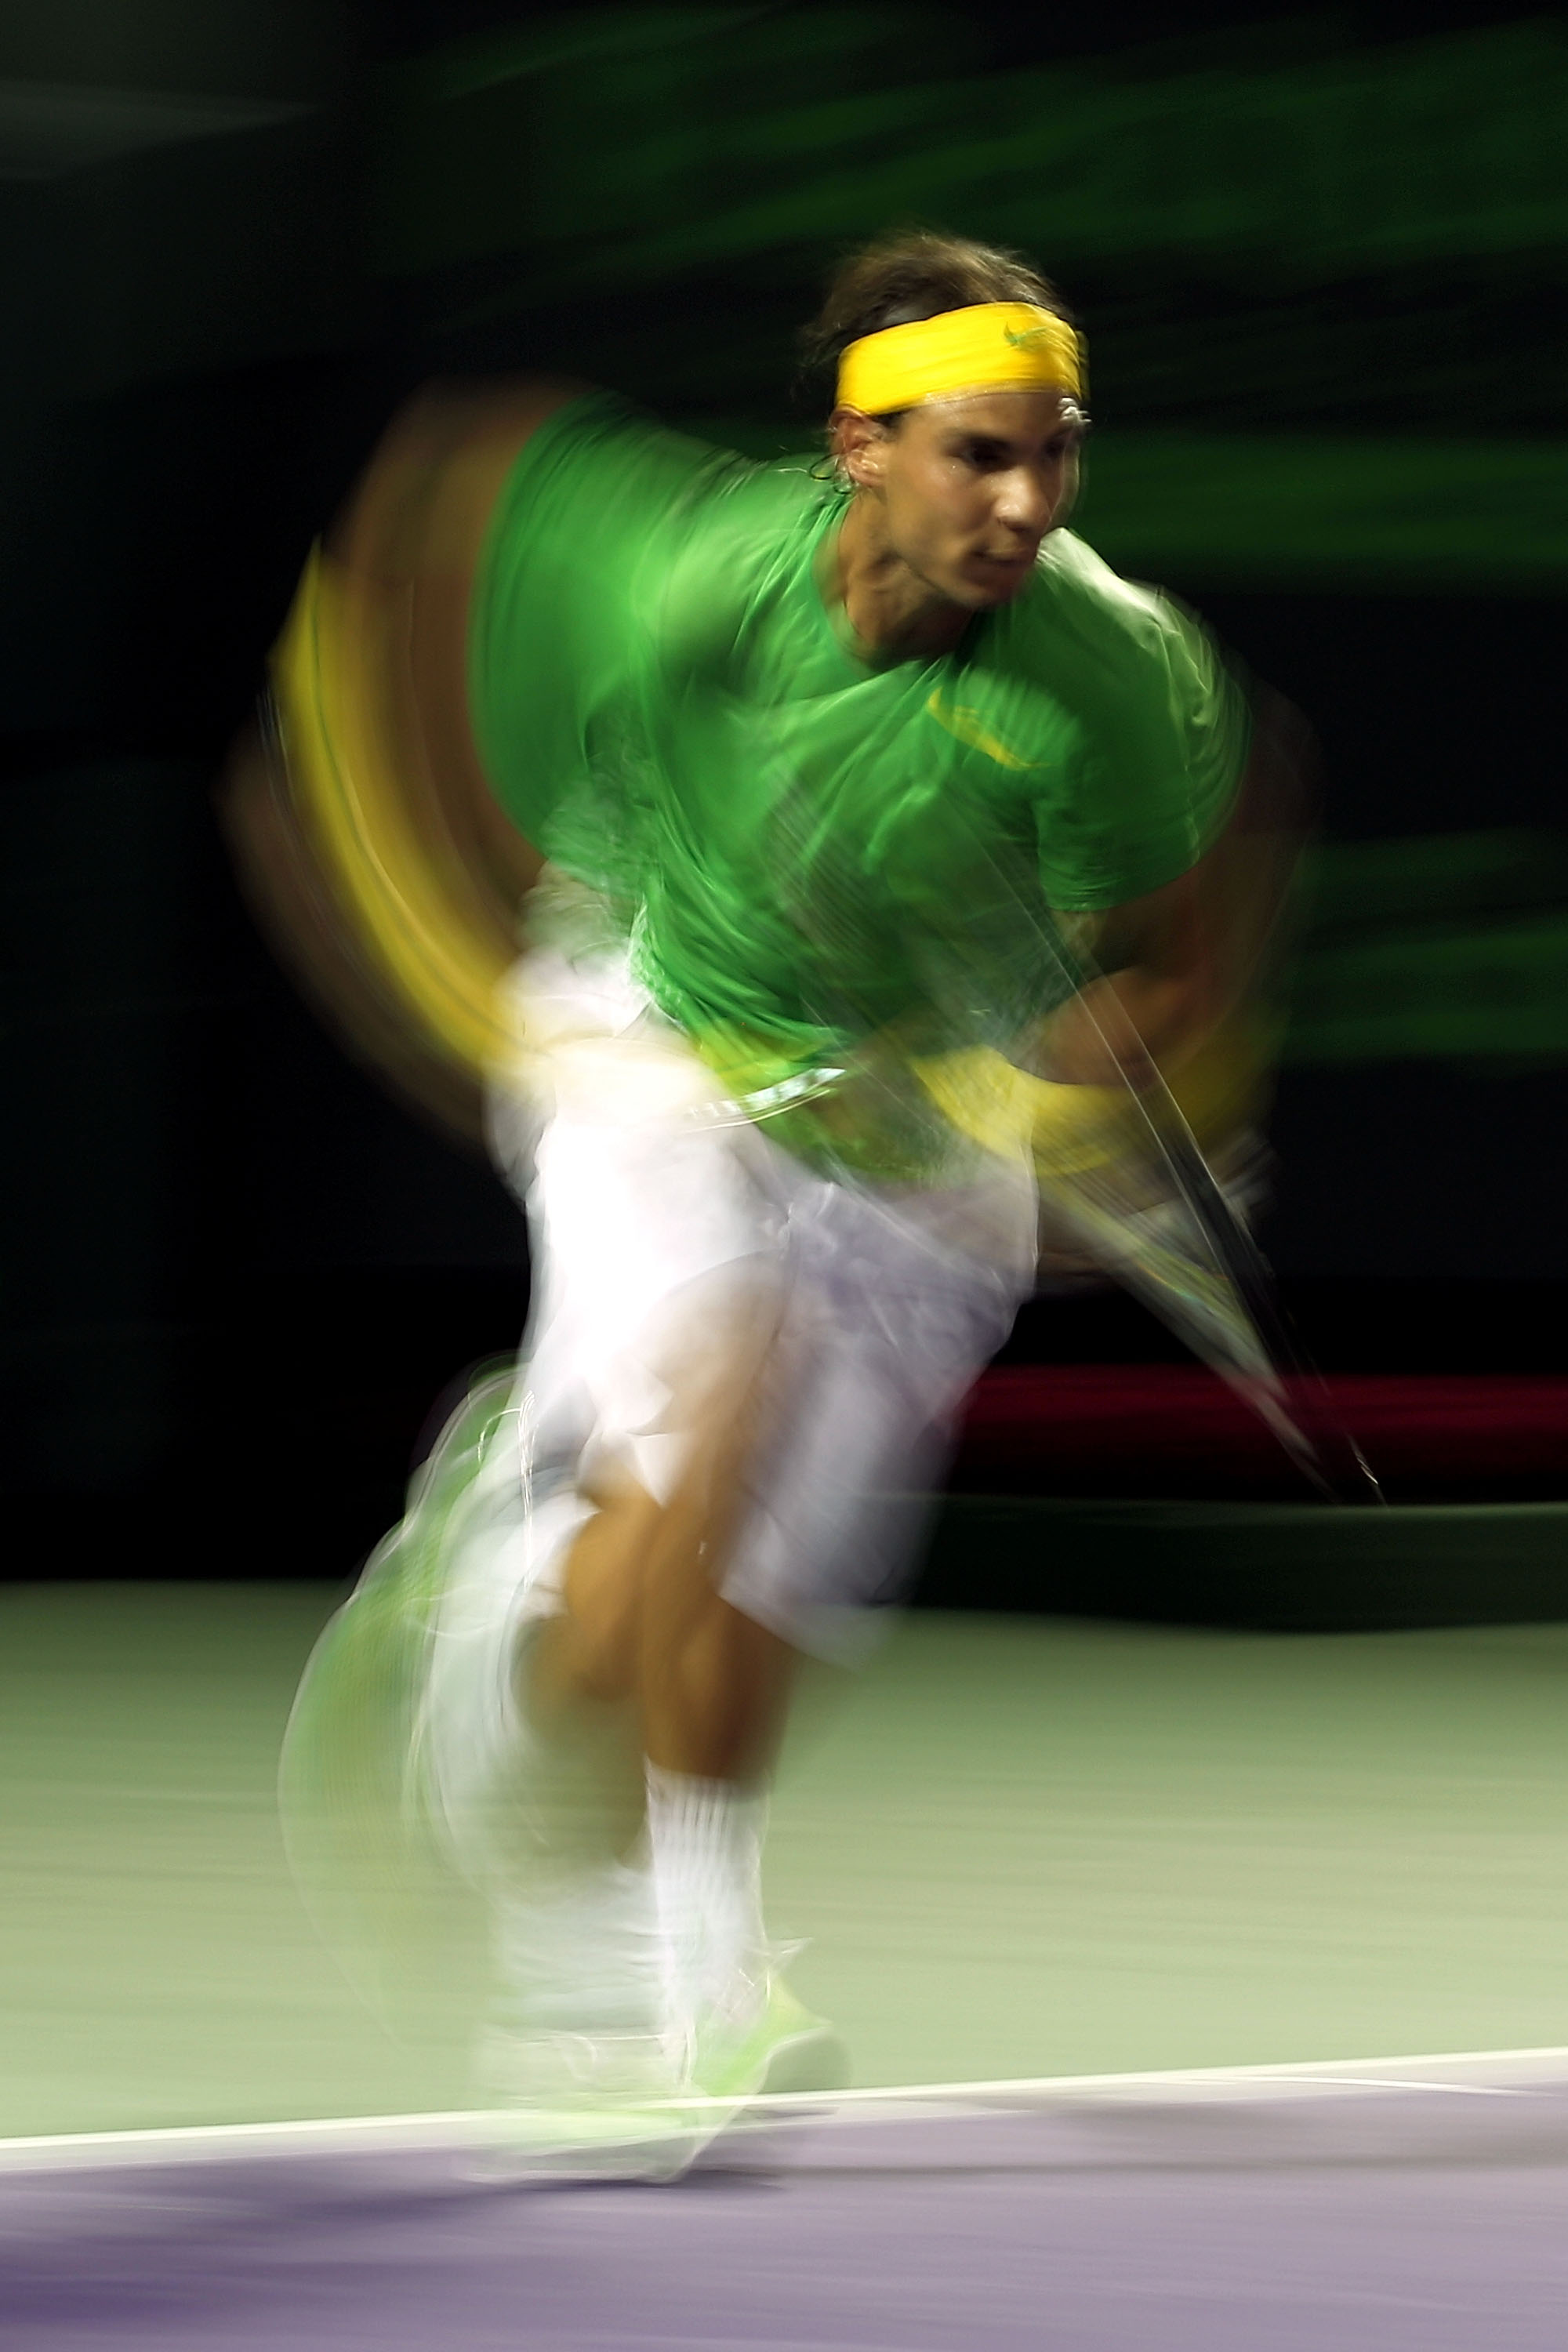 KEY BISCAYNE, FL - MARCH 26:  Rafael Nadal of Spain runs towards the net against Kei Nishikori of Japan during the Sony Ericsson Open at Crandon Park Tennis Center on March 26, 2011 in Key Biscayne, Florida.  (Photo by Al Bello/Getty Images)